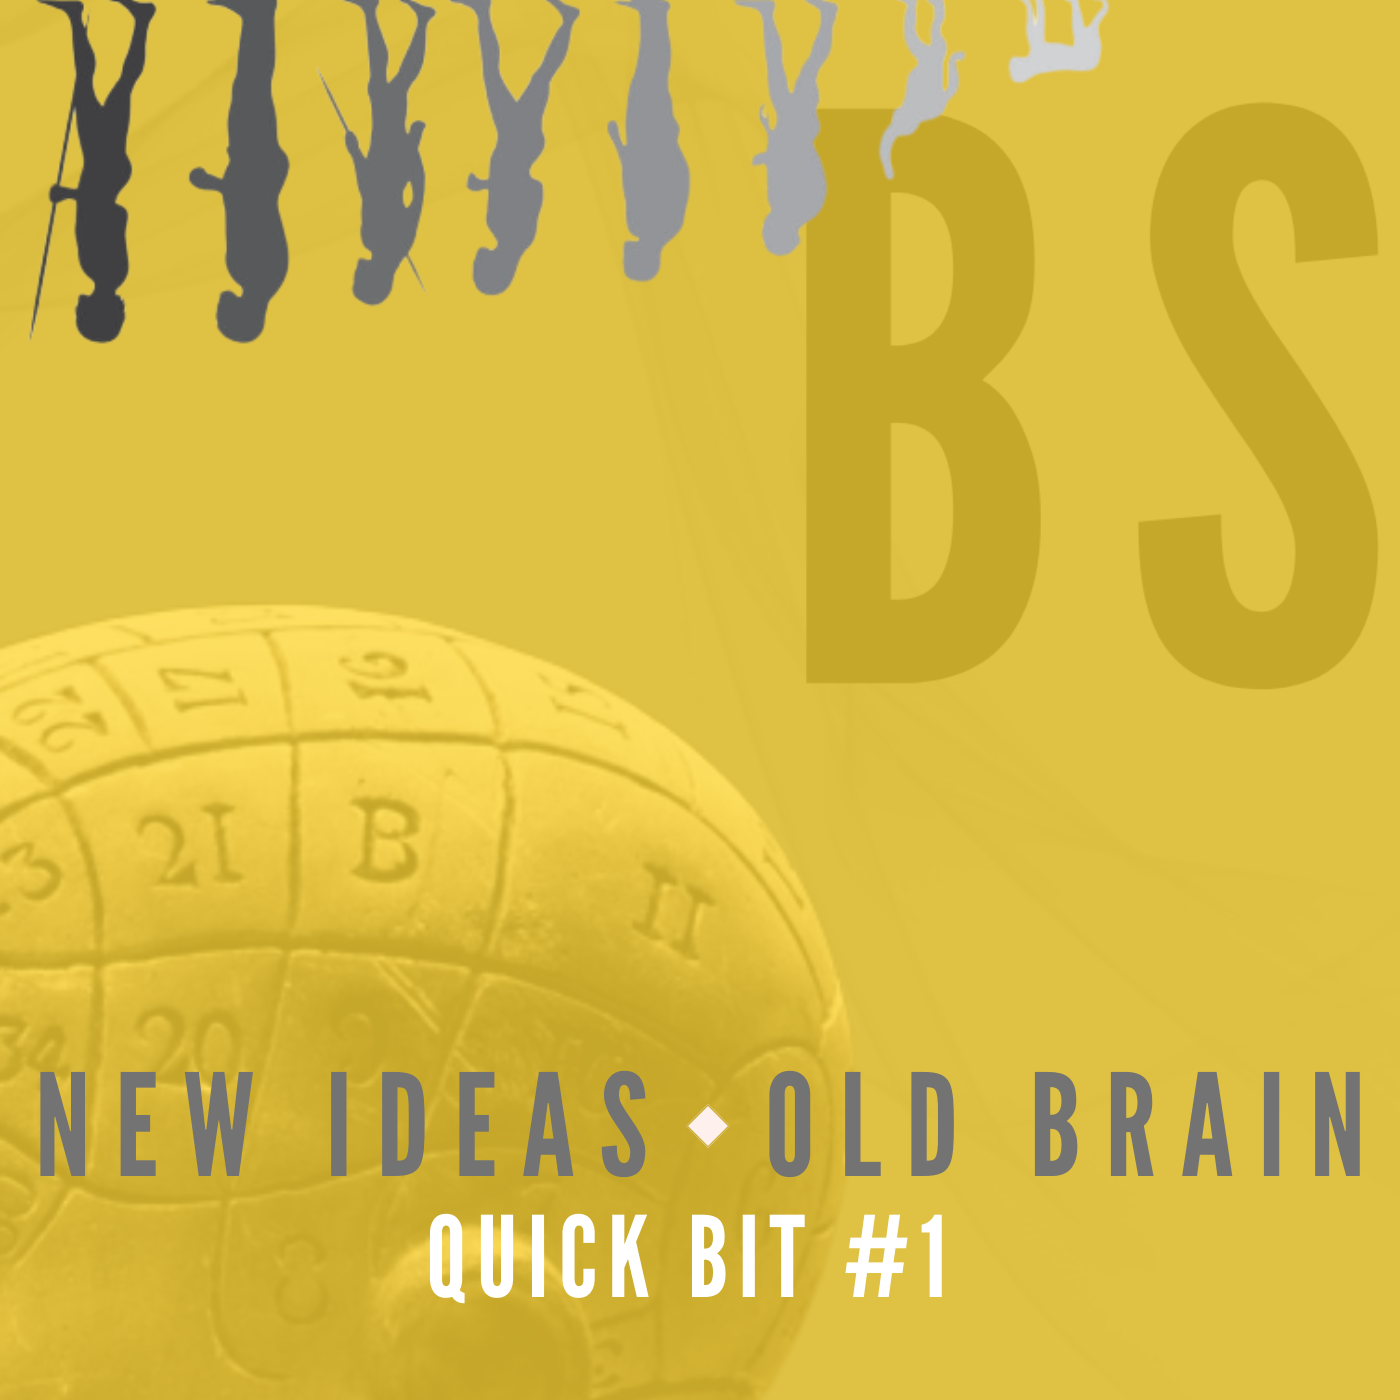 New Ideas, Old Brain Quick Bit #1: Leadership and Hypocritical Flip-Flopping